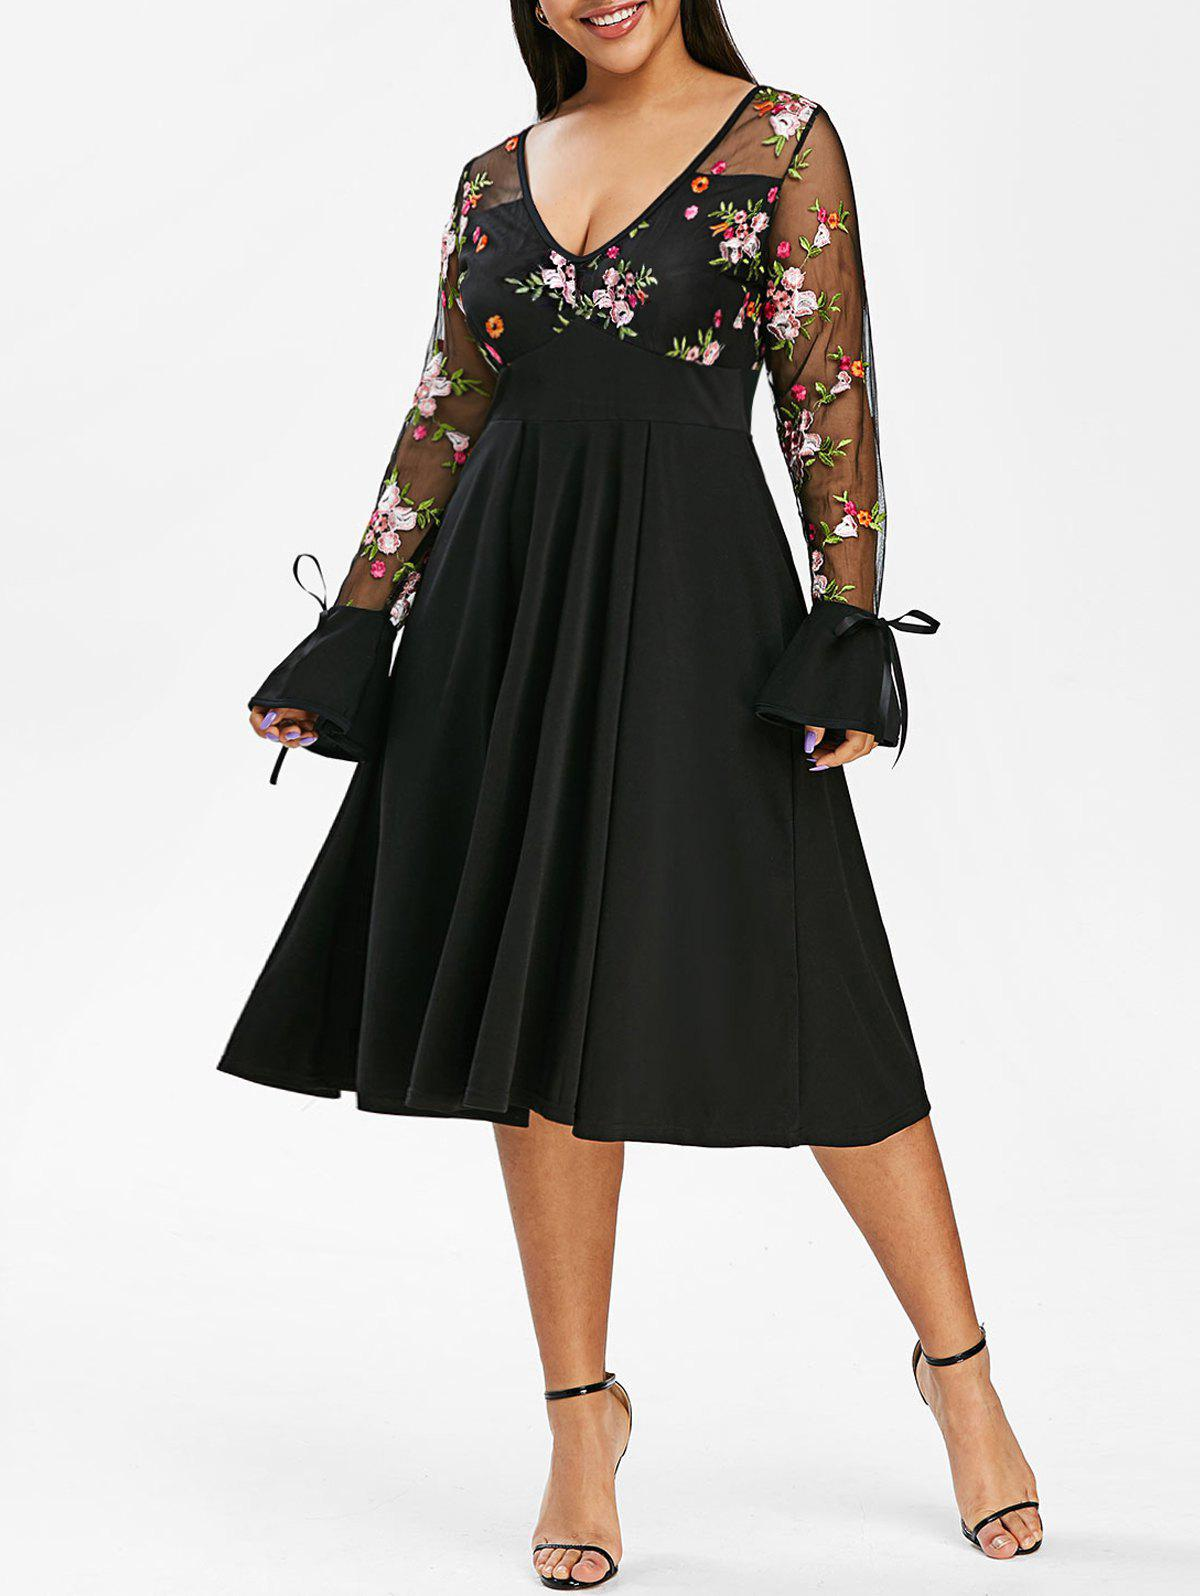 Floral Embroidered Tie Sleeve Mesh Panel Plus Size Dress - BLACK 5X